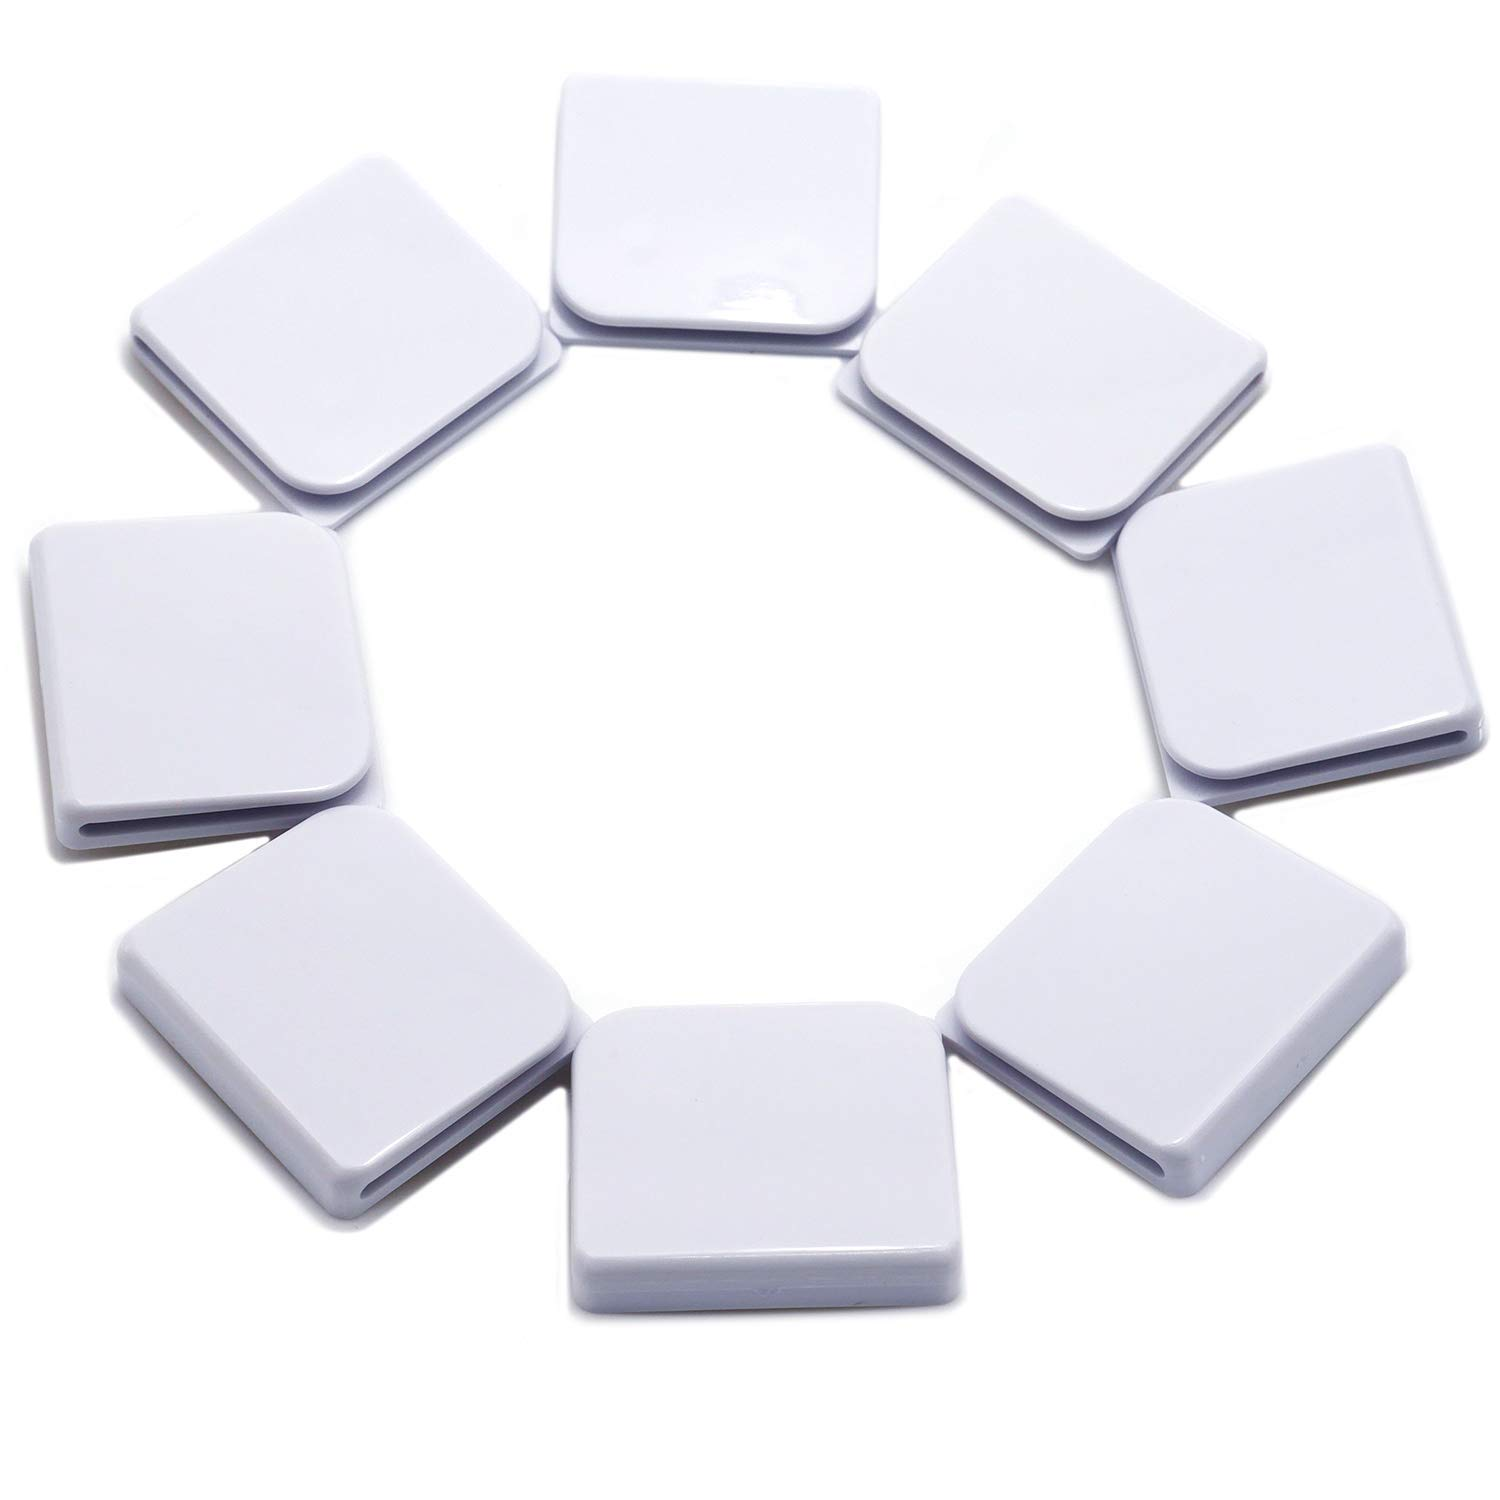 8 Pcs Windproof Stop Protect Clips,Shower Curtain Splash Guard Clip Windproof Self Adhesive Curtain Clips - White by COJOY